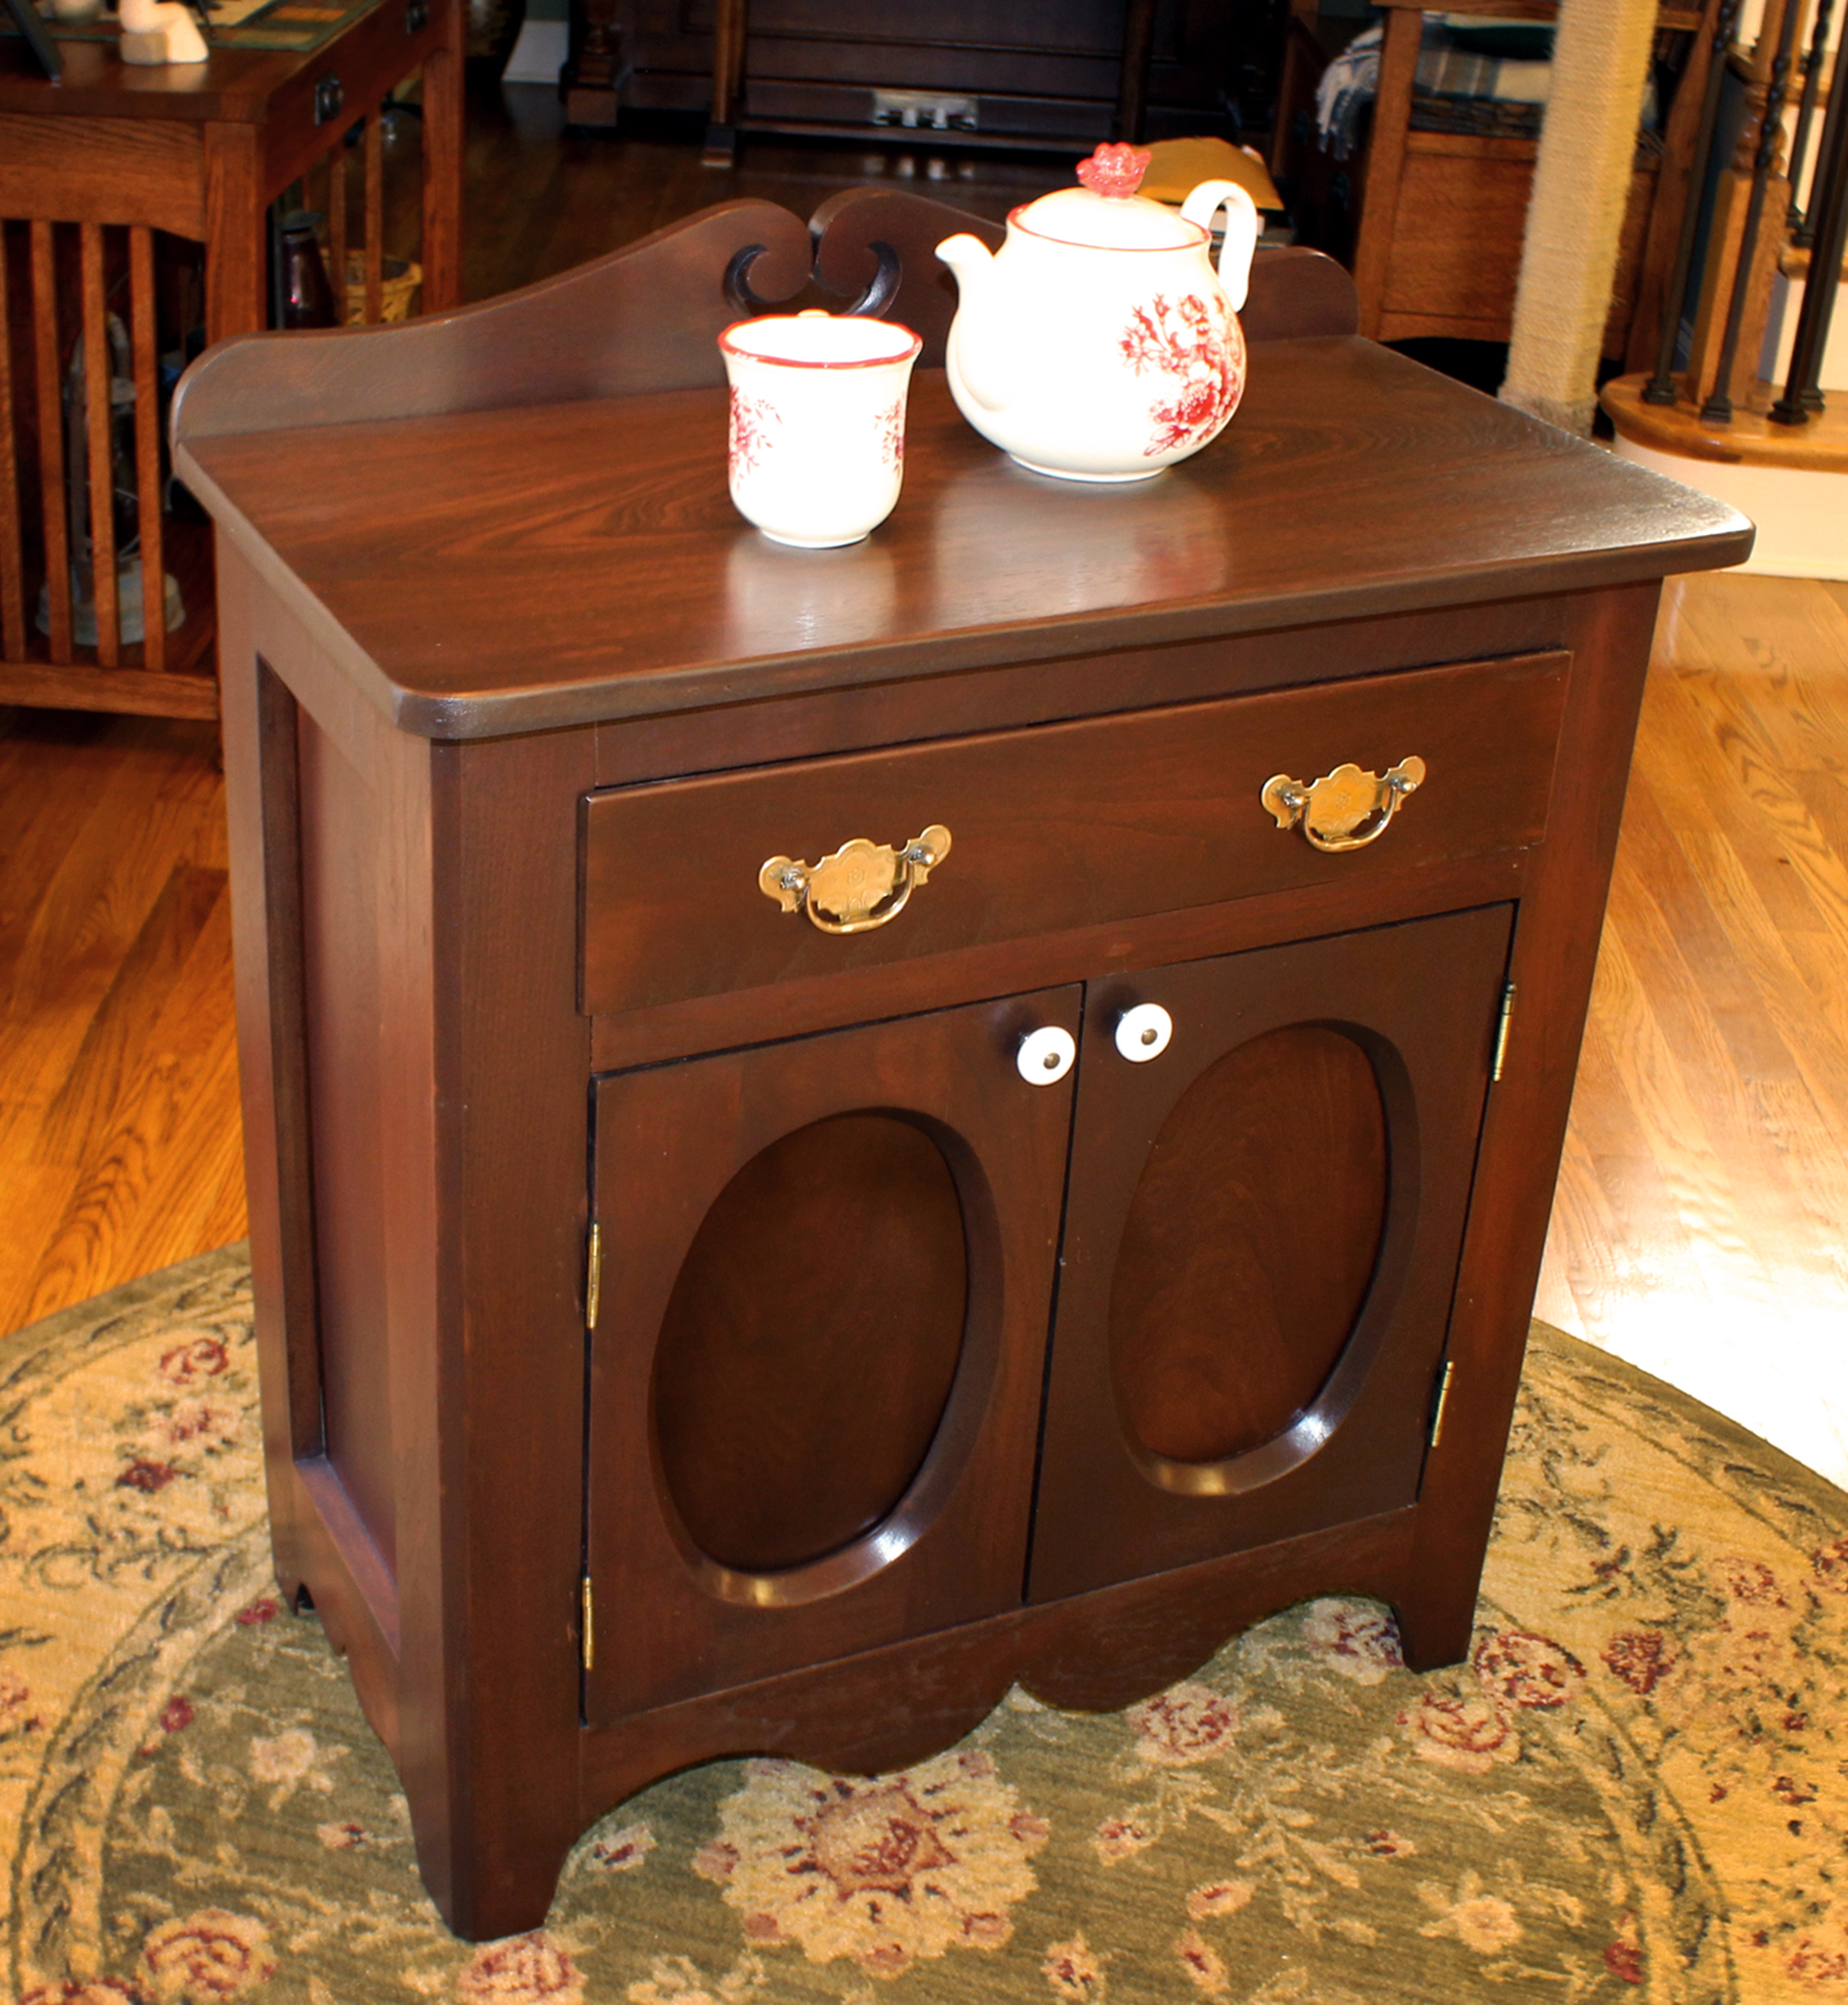 General Finishes Gel Stain Pint Or Furniture Oil Topcoat: Antique Brown Mahogany Washstand Restoration